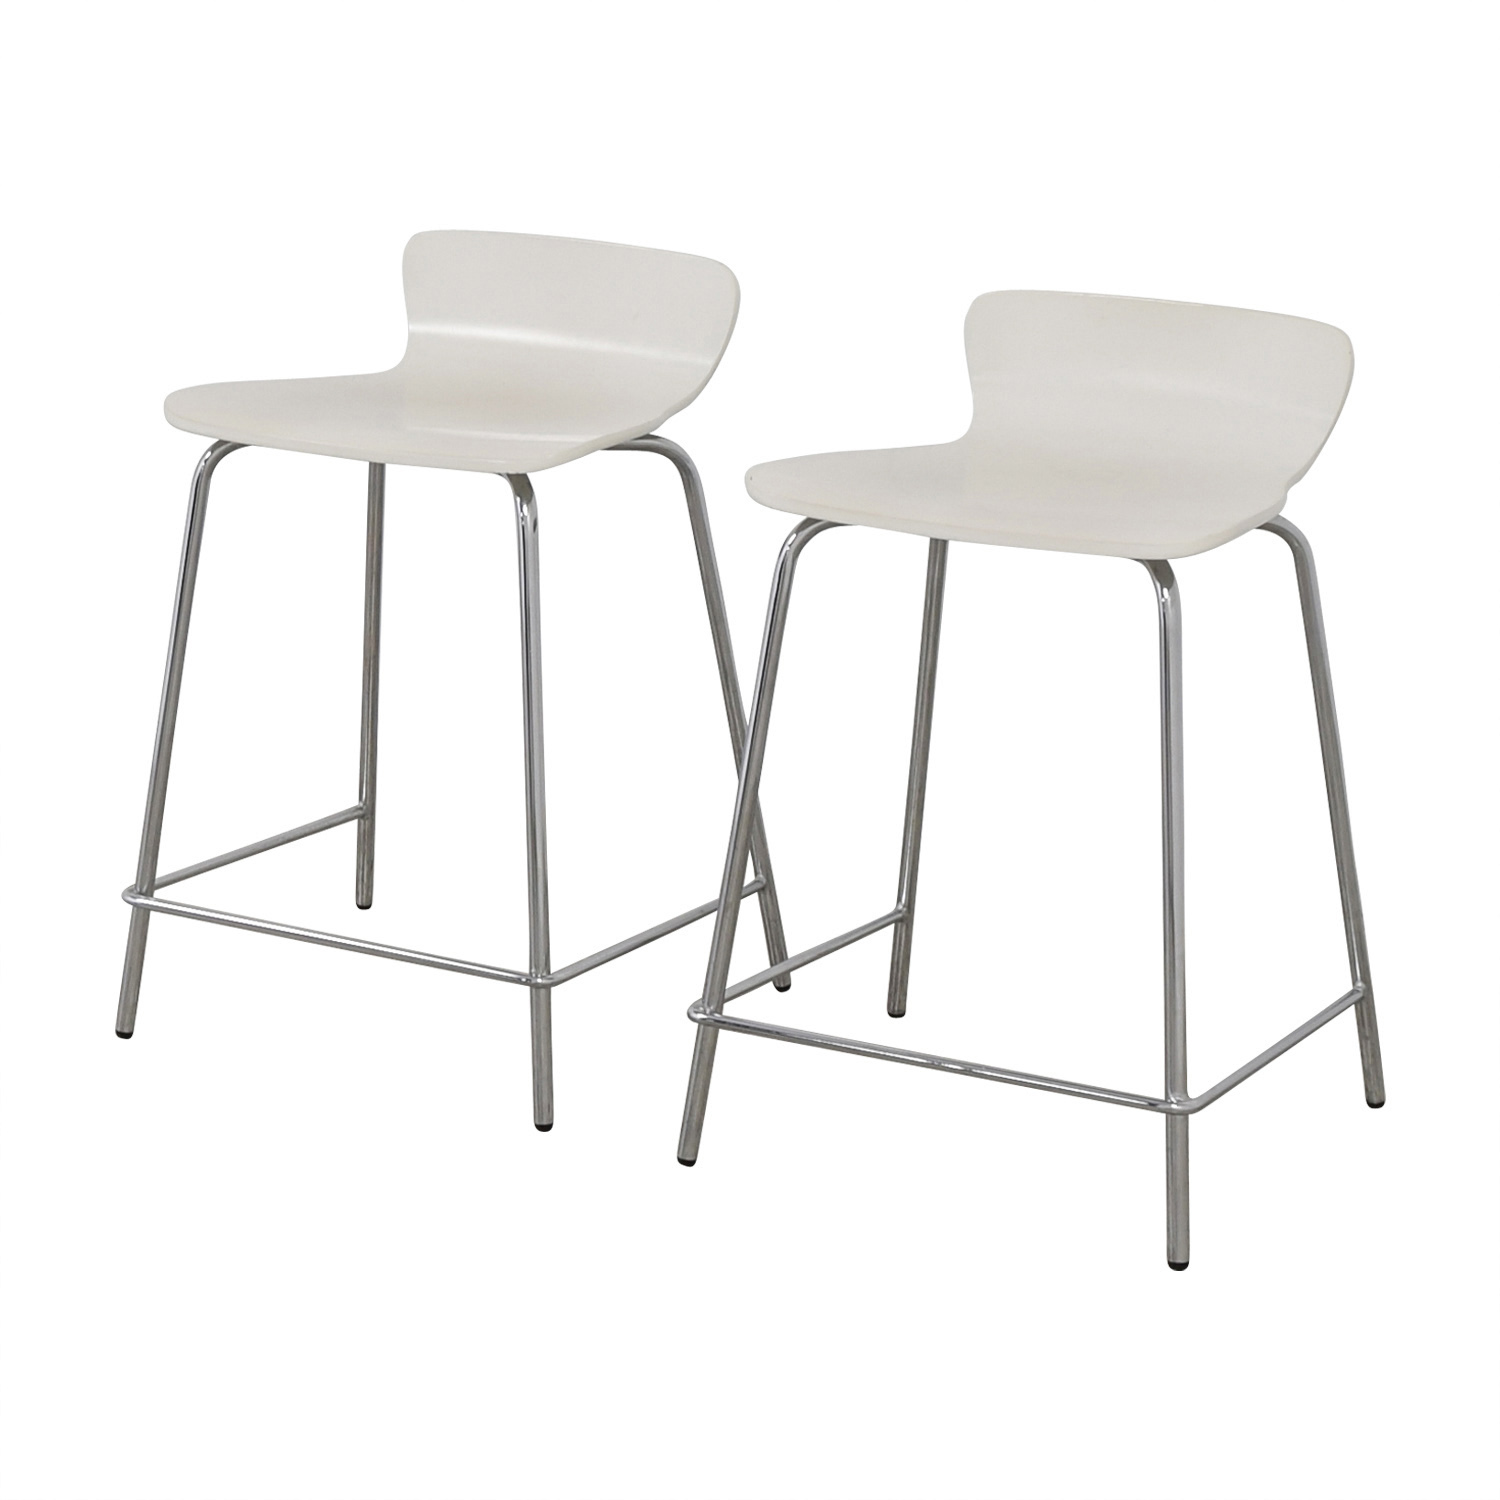 Crate and Barrel Crate and Barrel Felix White Counter Stools discount